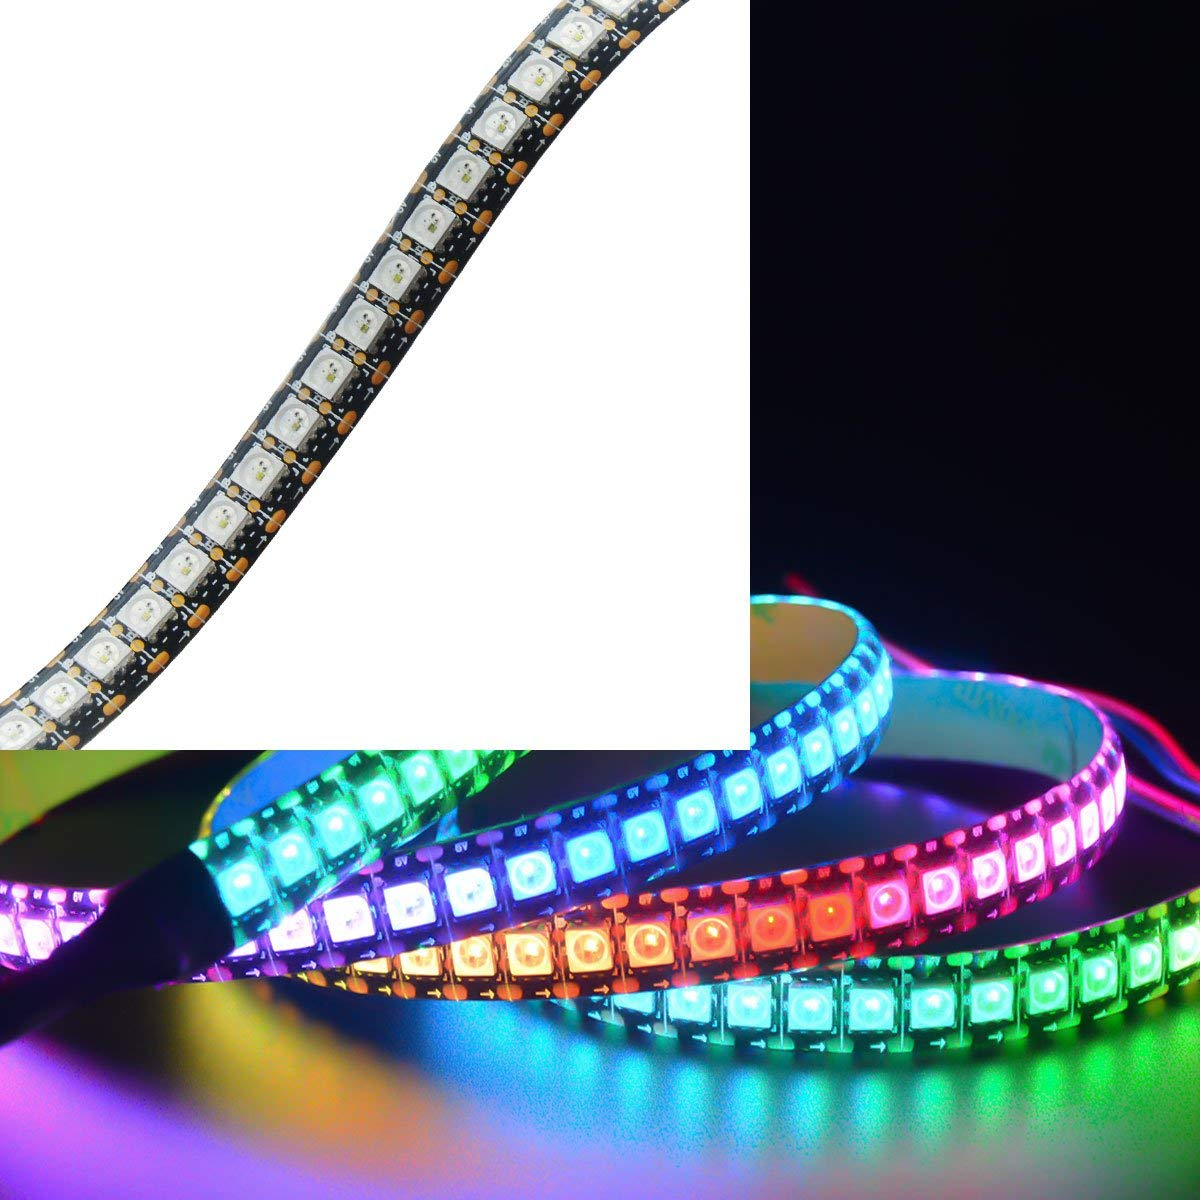 Mokungit WS2813 LED Strip WS2813(Upgraded WS2812B) Dual Signal Wires Individually Addressable Dream Color 5050 RGB Flexible Strip Light 3.2ft 144 LEDs Black PCB Waterproof IP65 DC5V